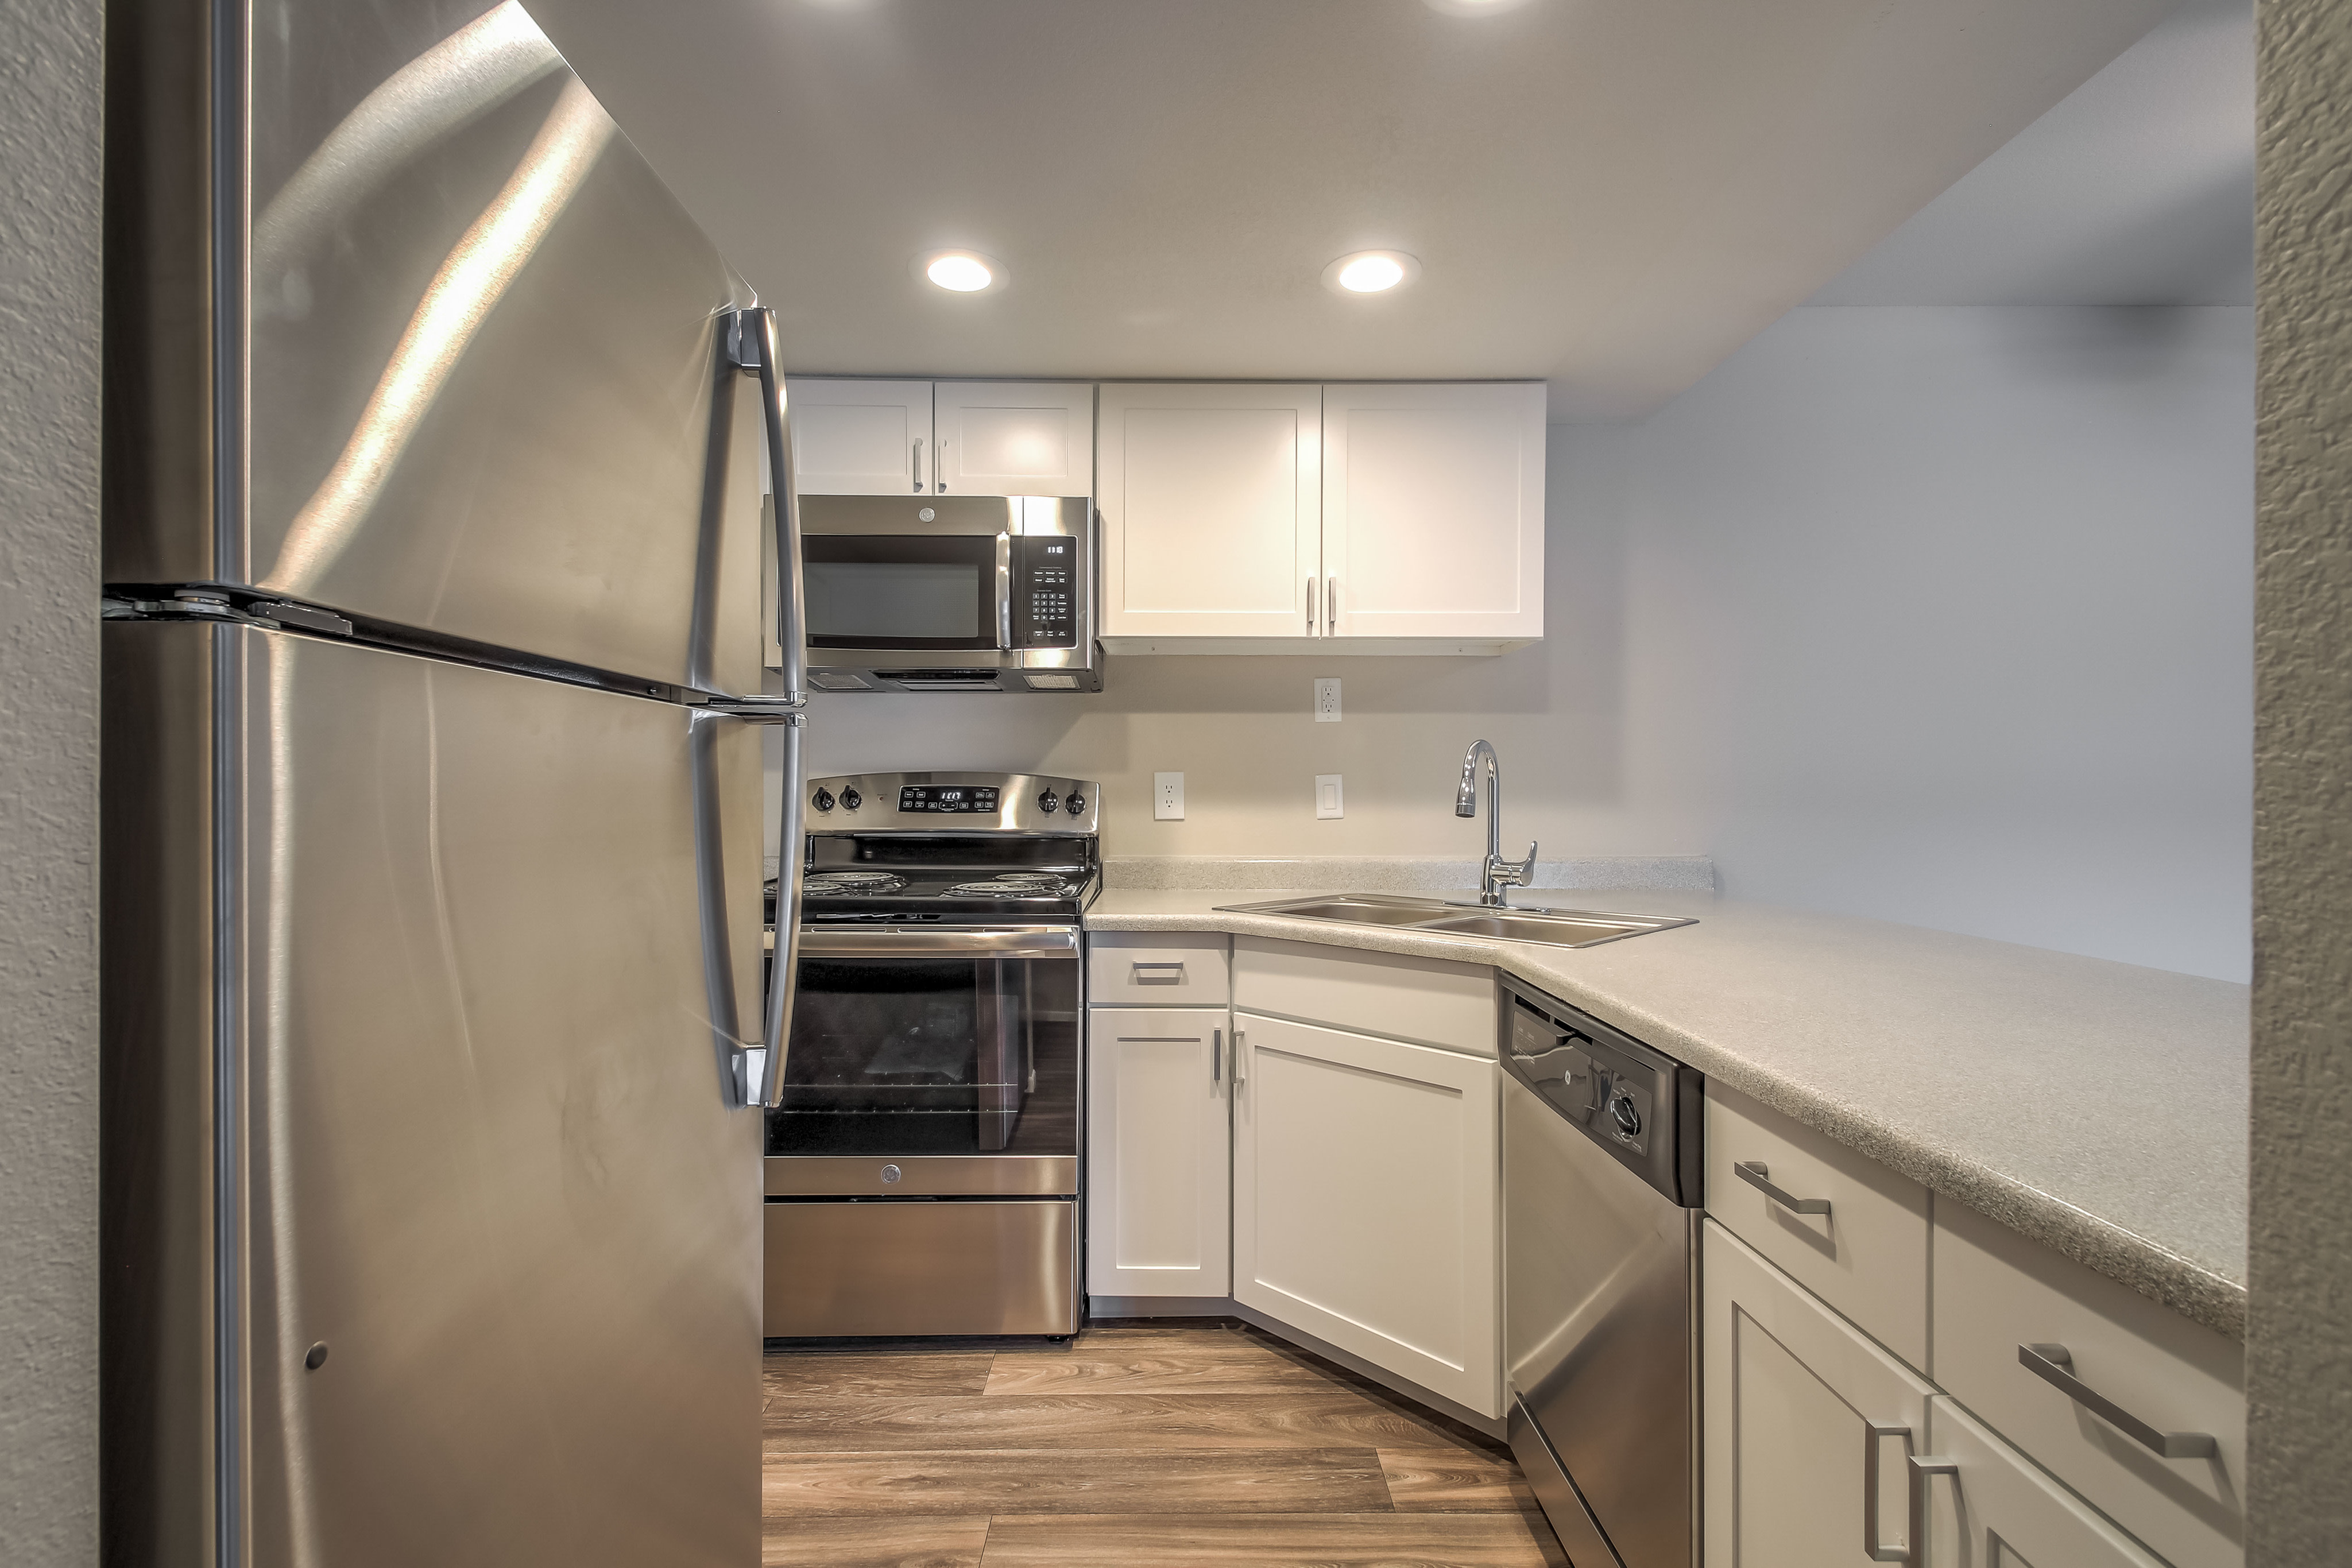 20 Best Apartments In Salt Lake City UT with pictures